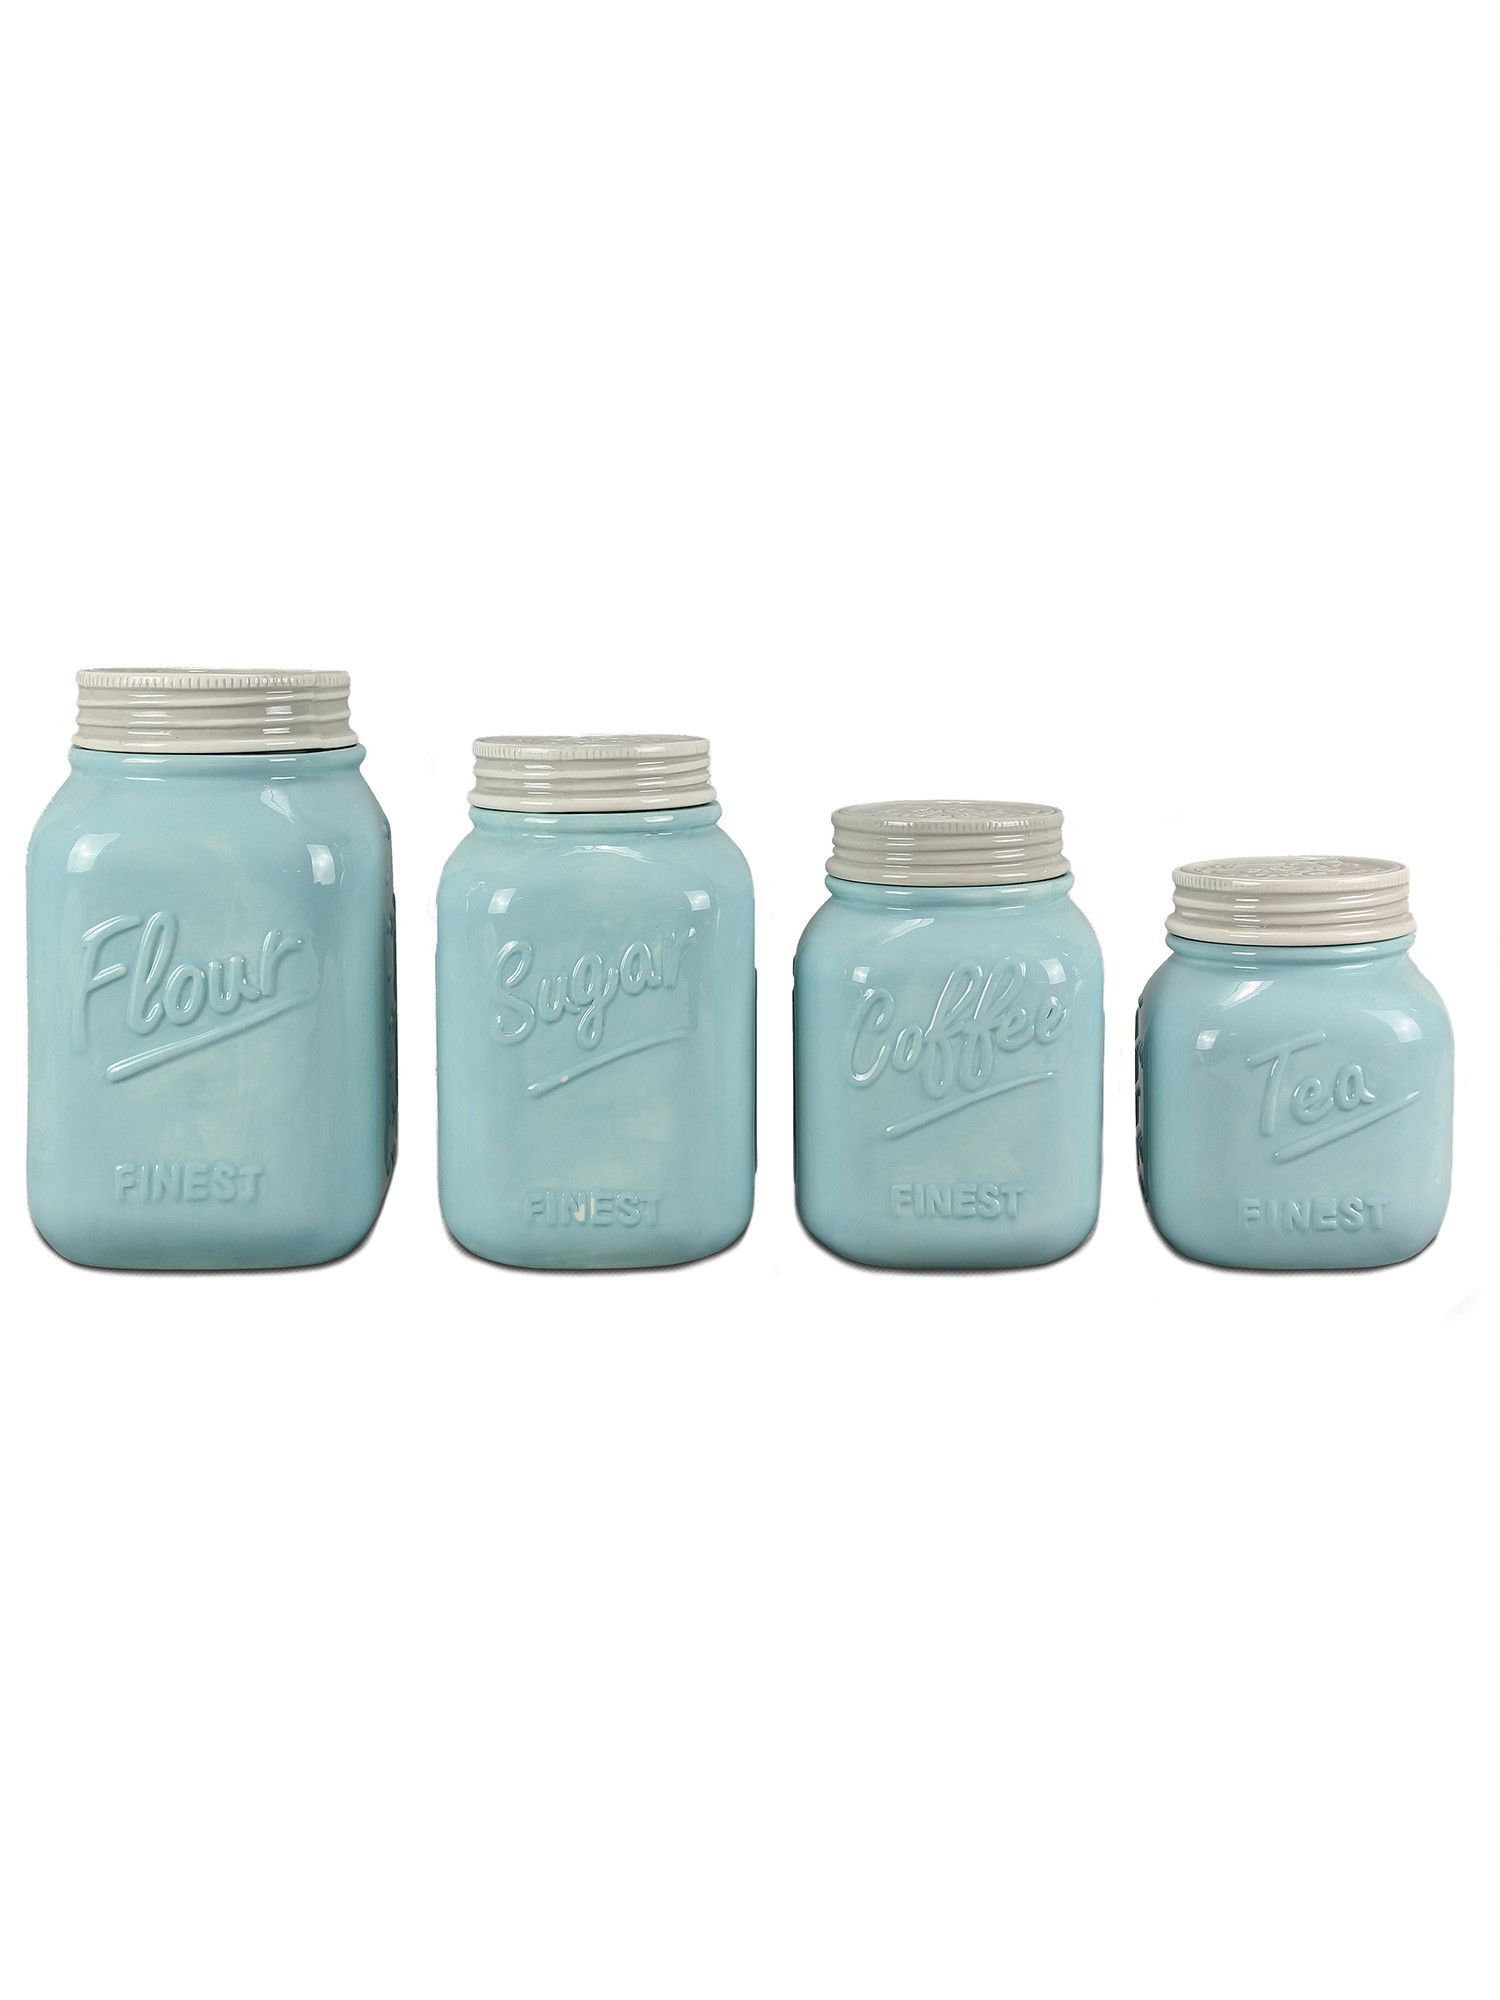 Blue Canister Mason Jar Set of 4 | Canister sets, Jar and Country charm